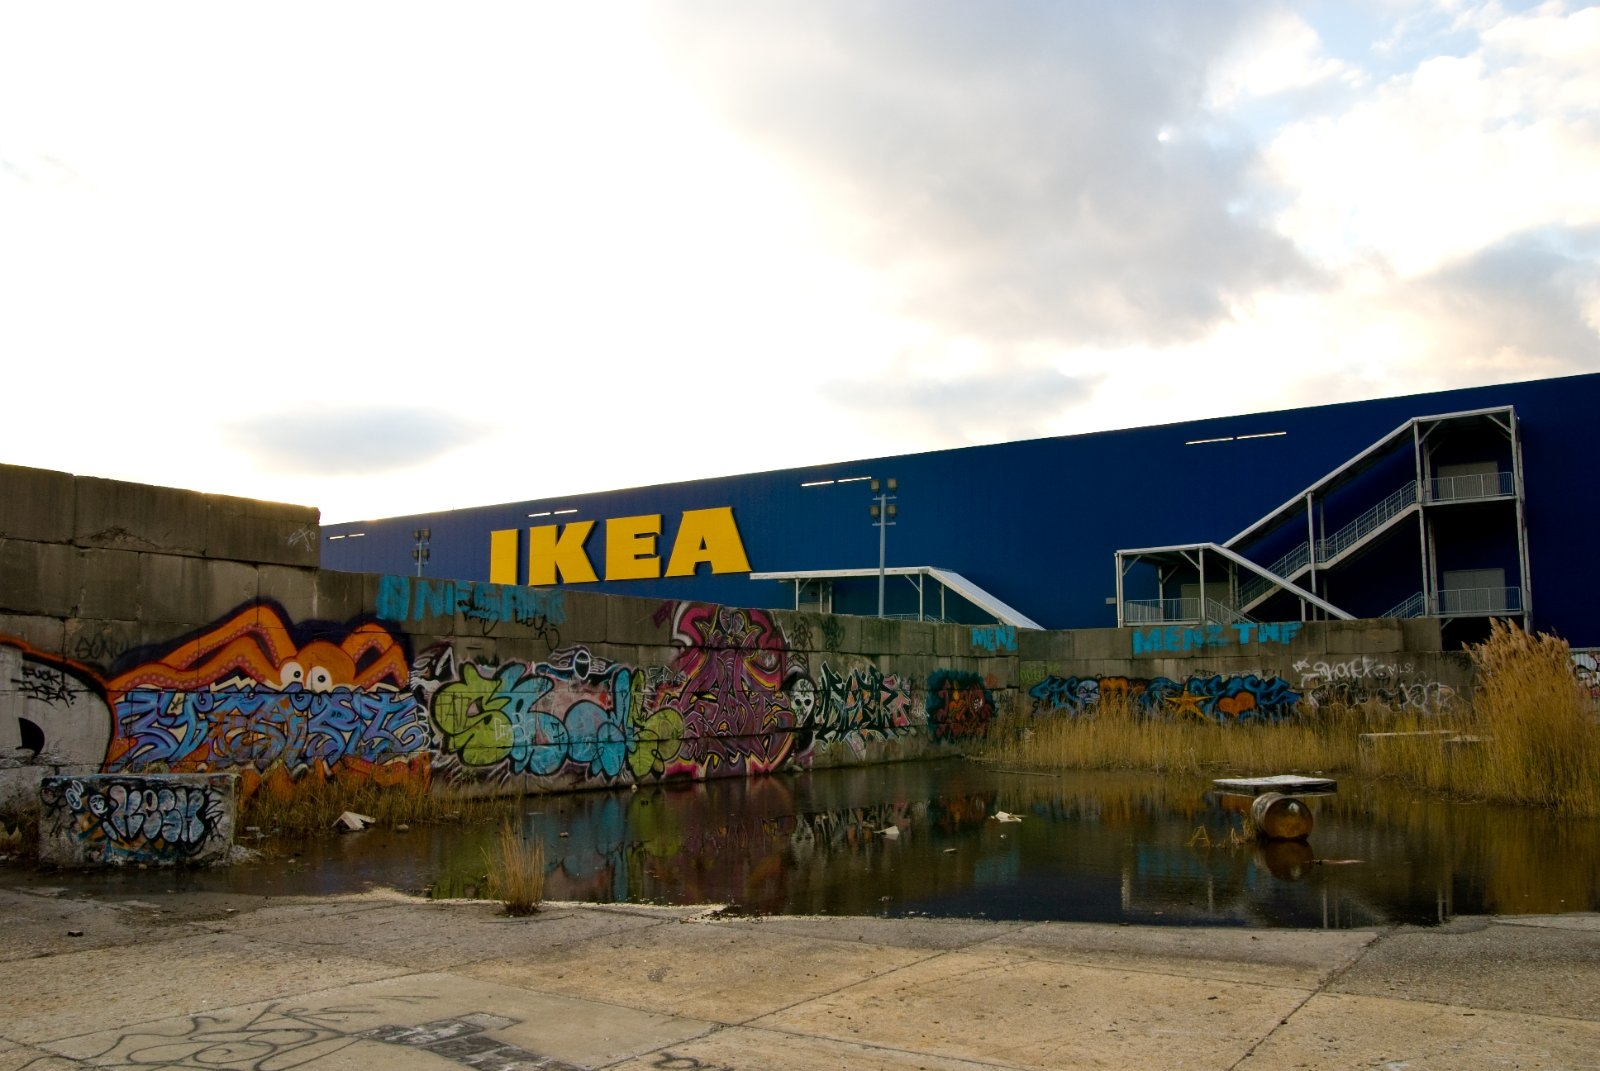 The IKEA in Red Hook, Brooklyn, NY after Hurricane Sandy.